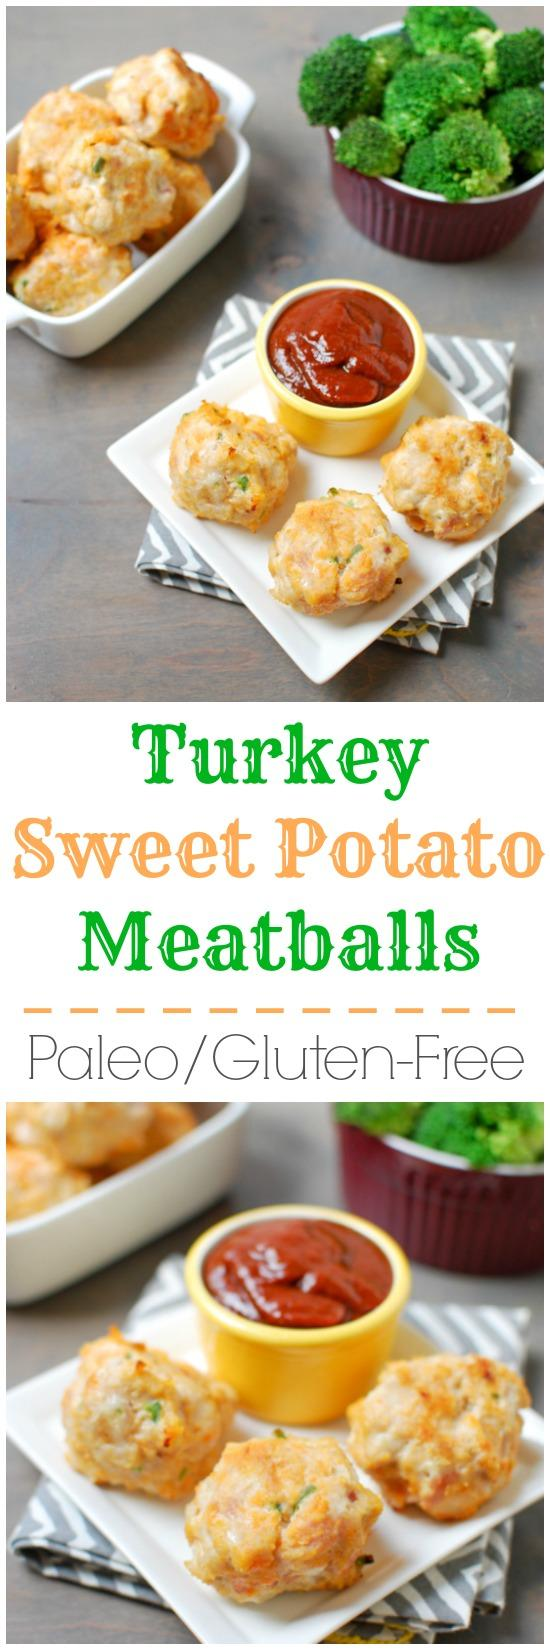 Healthy Turkey Meatballs With Sweet Potato Recipe